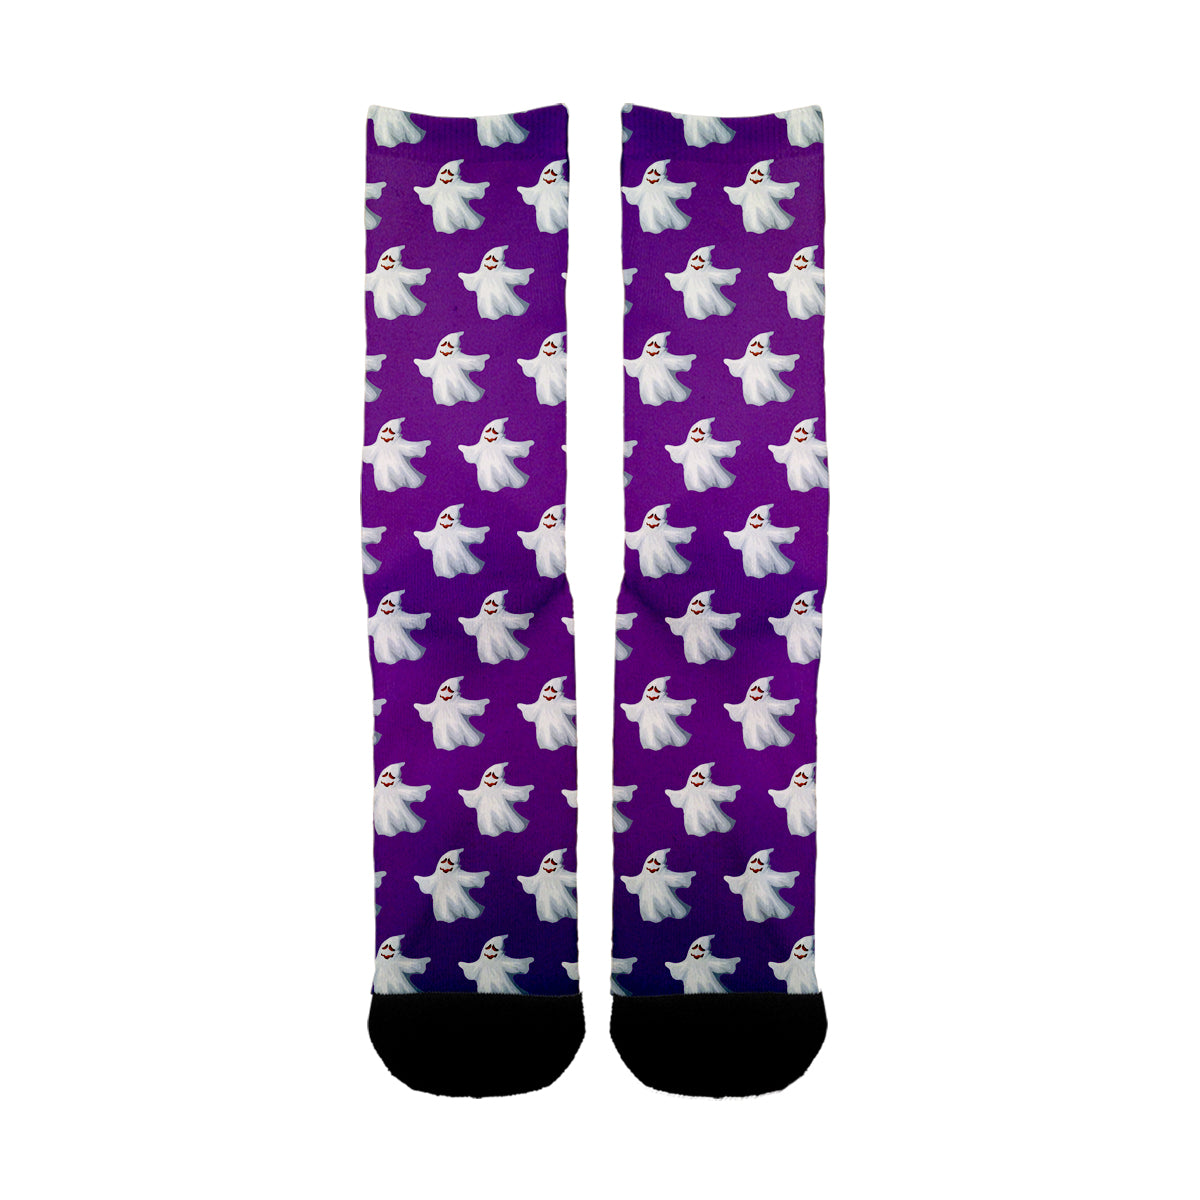 Ghost Hallowen Socks - Shweeet